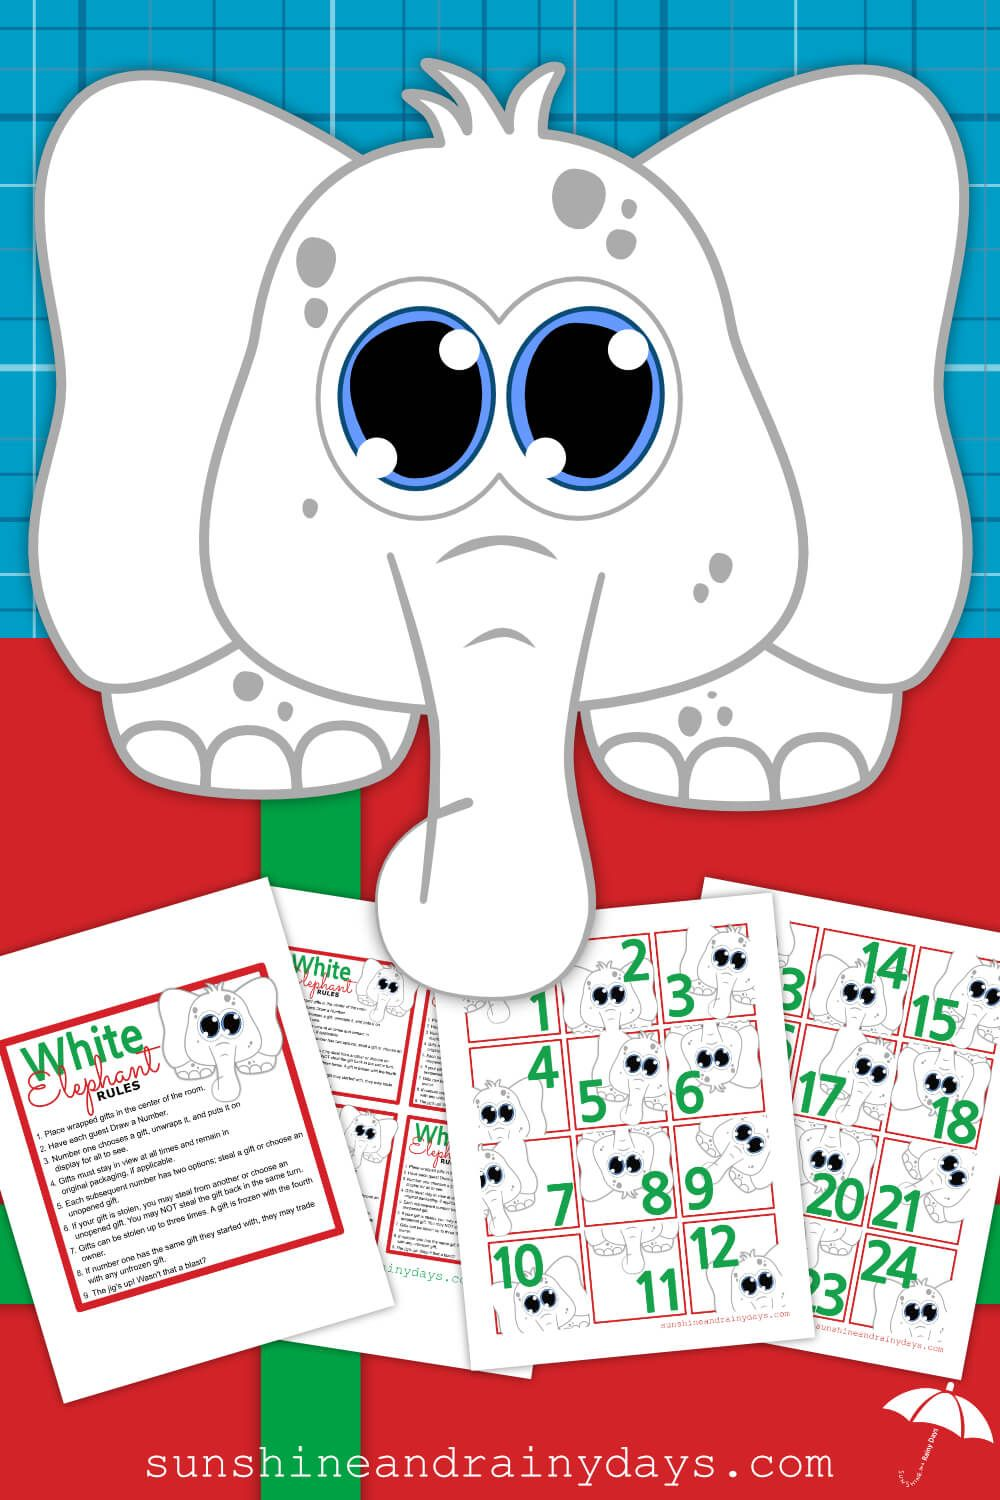 White Elephant Rules And Numbers | Sunshine and Rainy Days ...